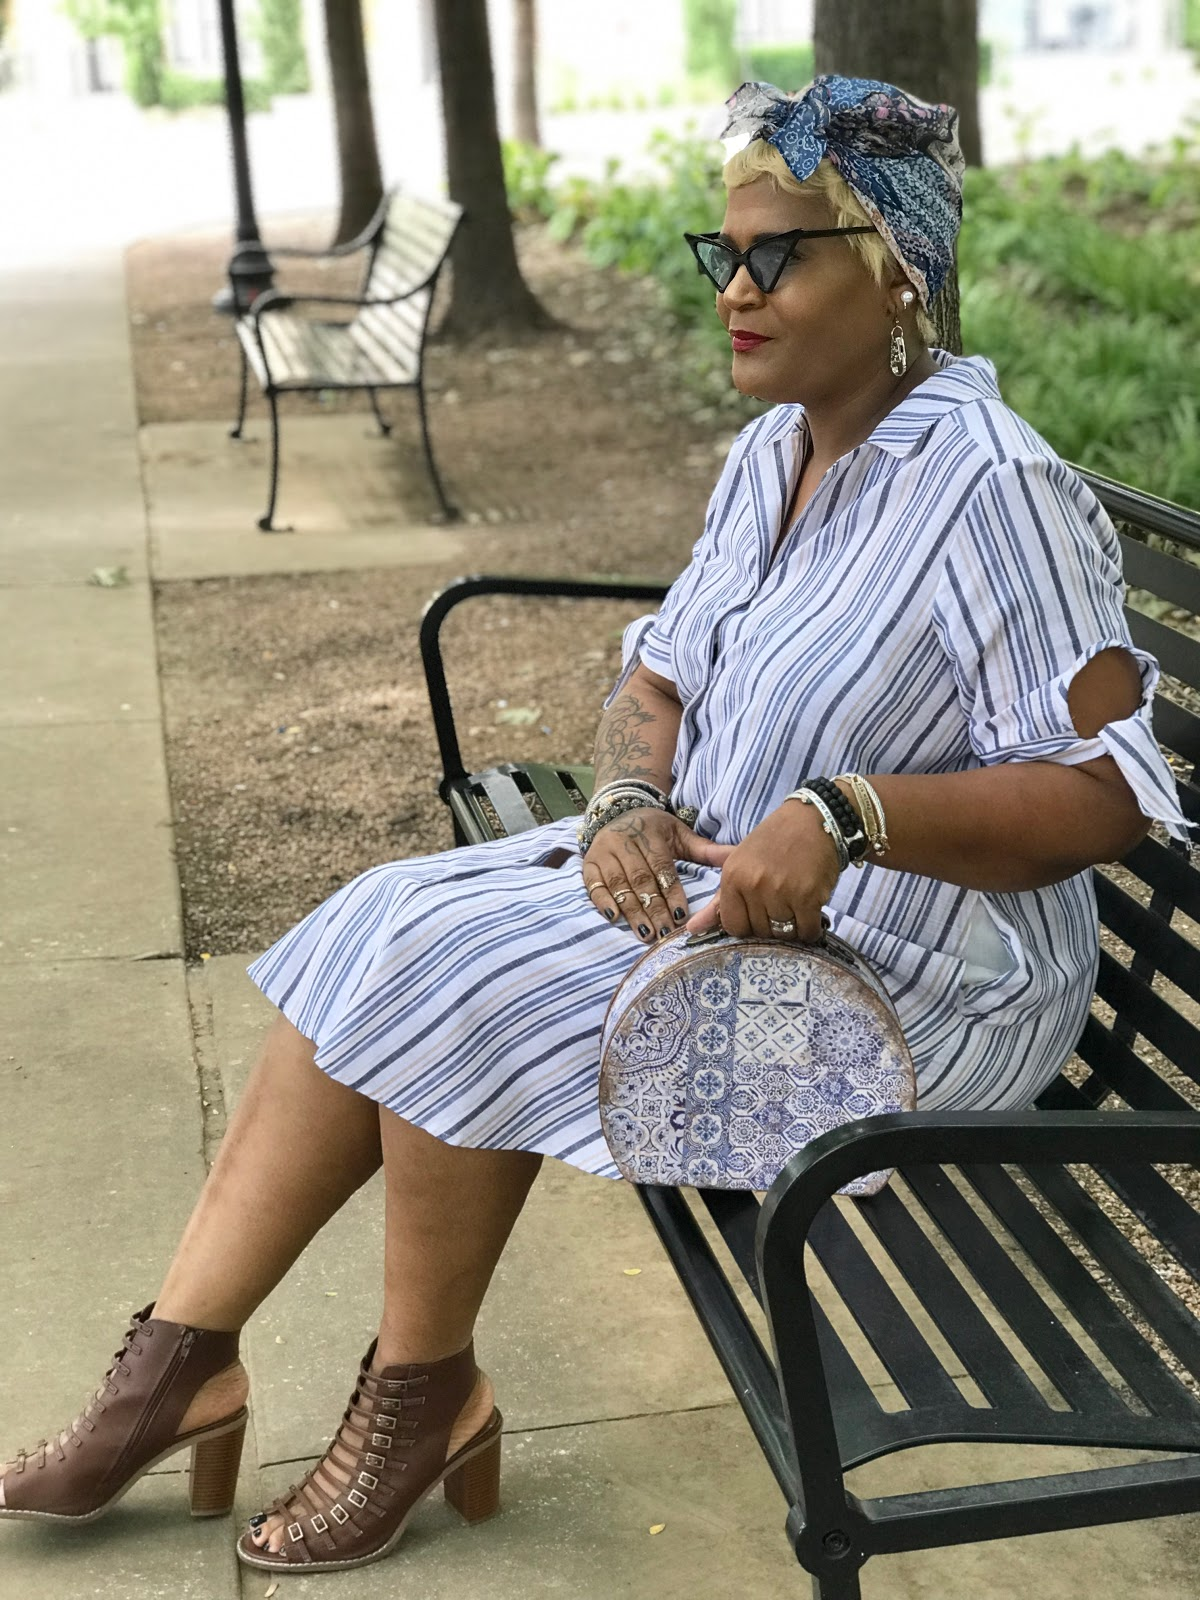 Image: Tangie Bell sitting on bench and sharing her outfits of the day.